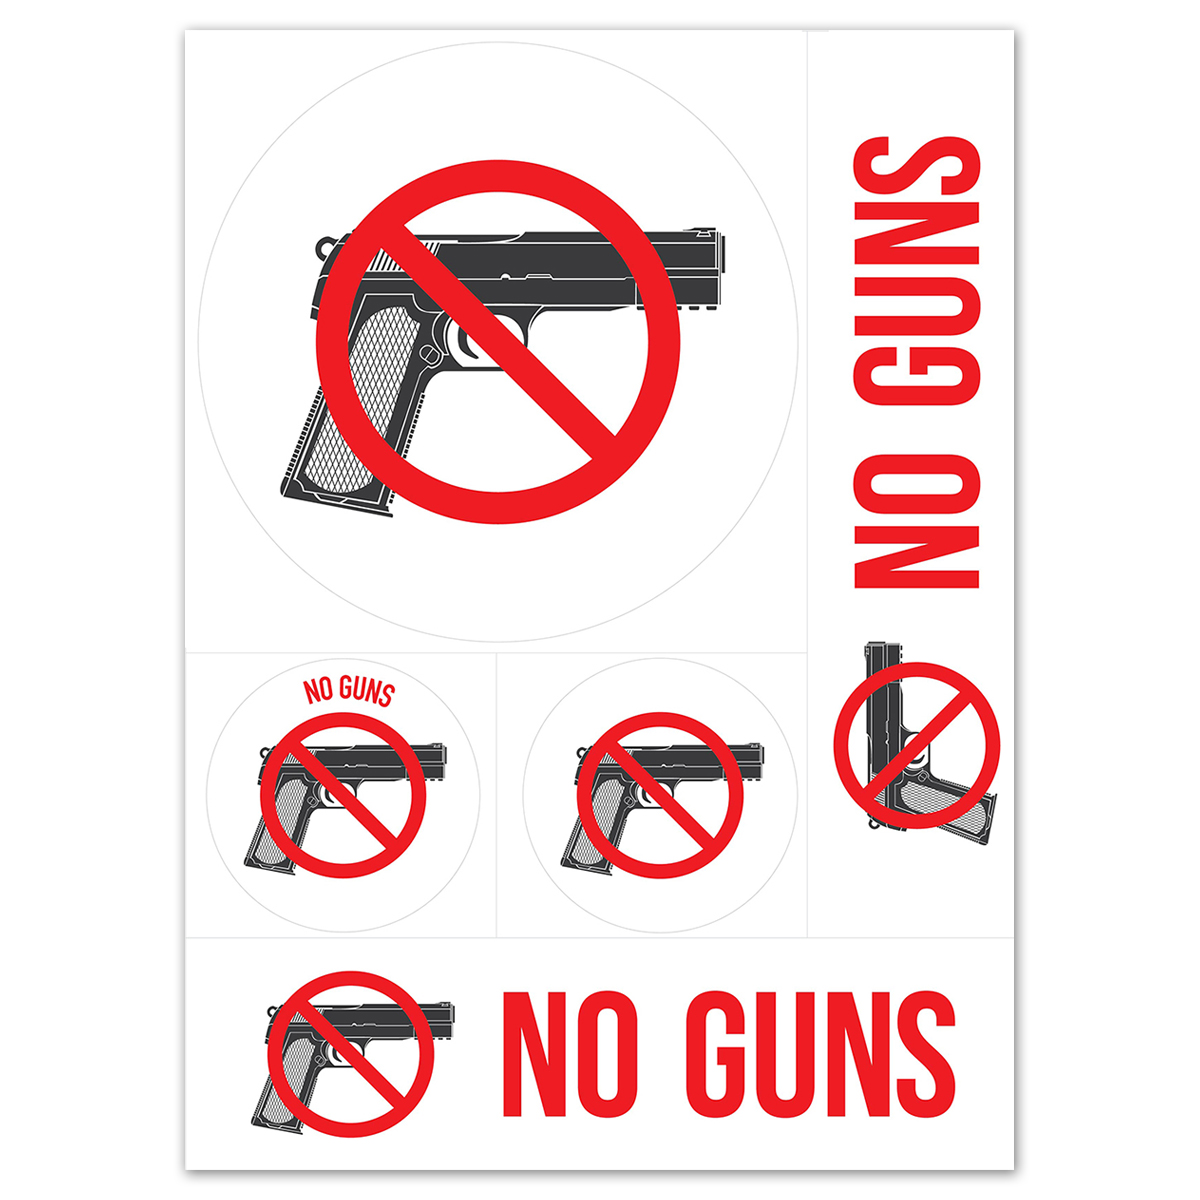 NO GUNS - Decal Combo Pack - 098378